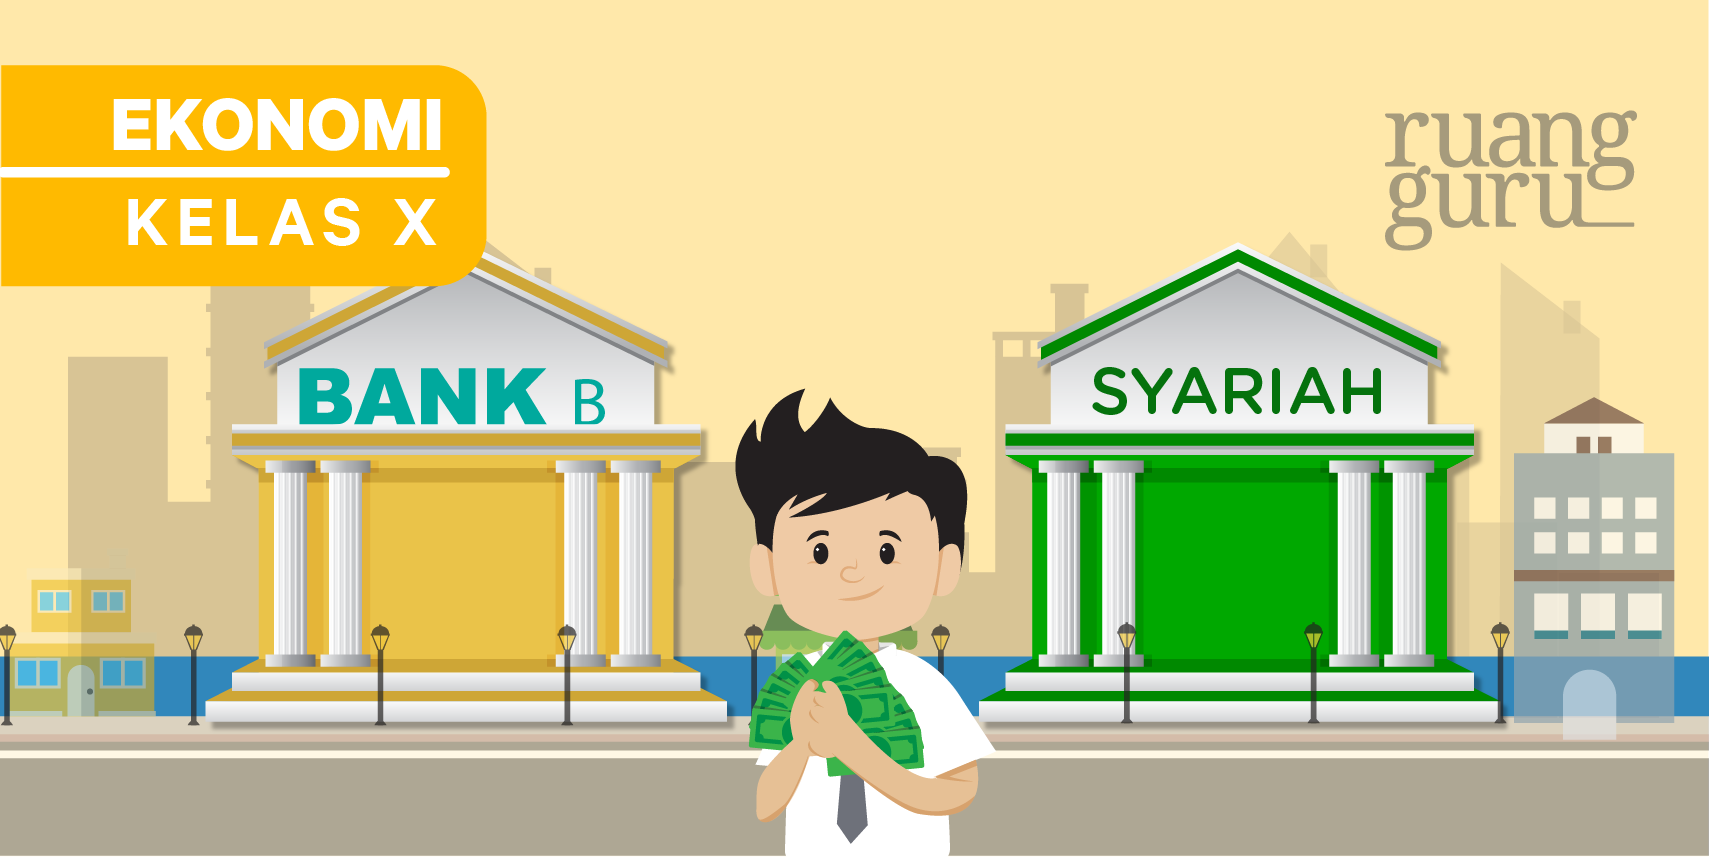 bank konvensional dan bank syariah - header